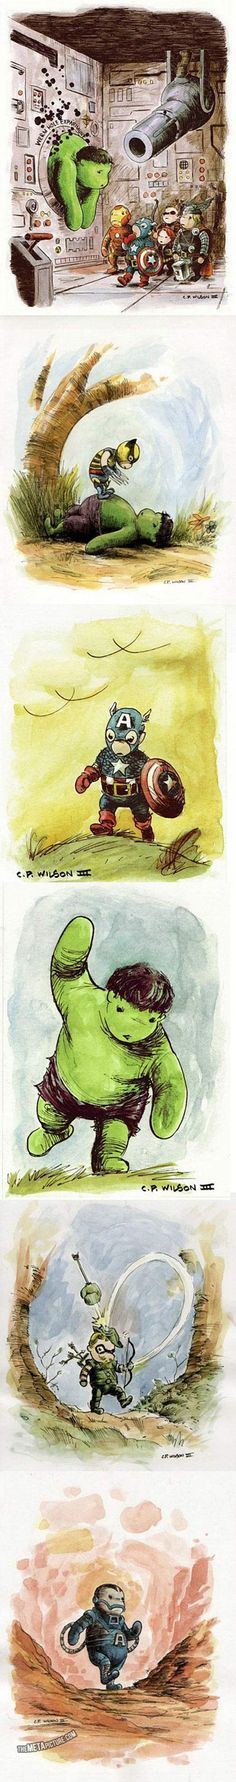 Here are some awesome illustrations of The Avengers in the style of Winnie the Pooh.